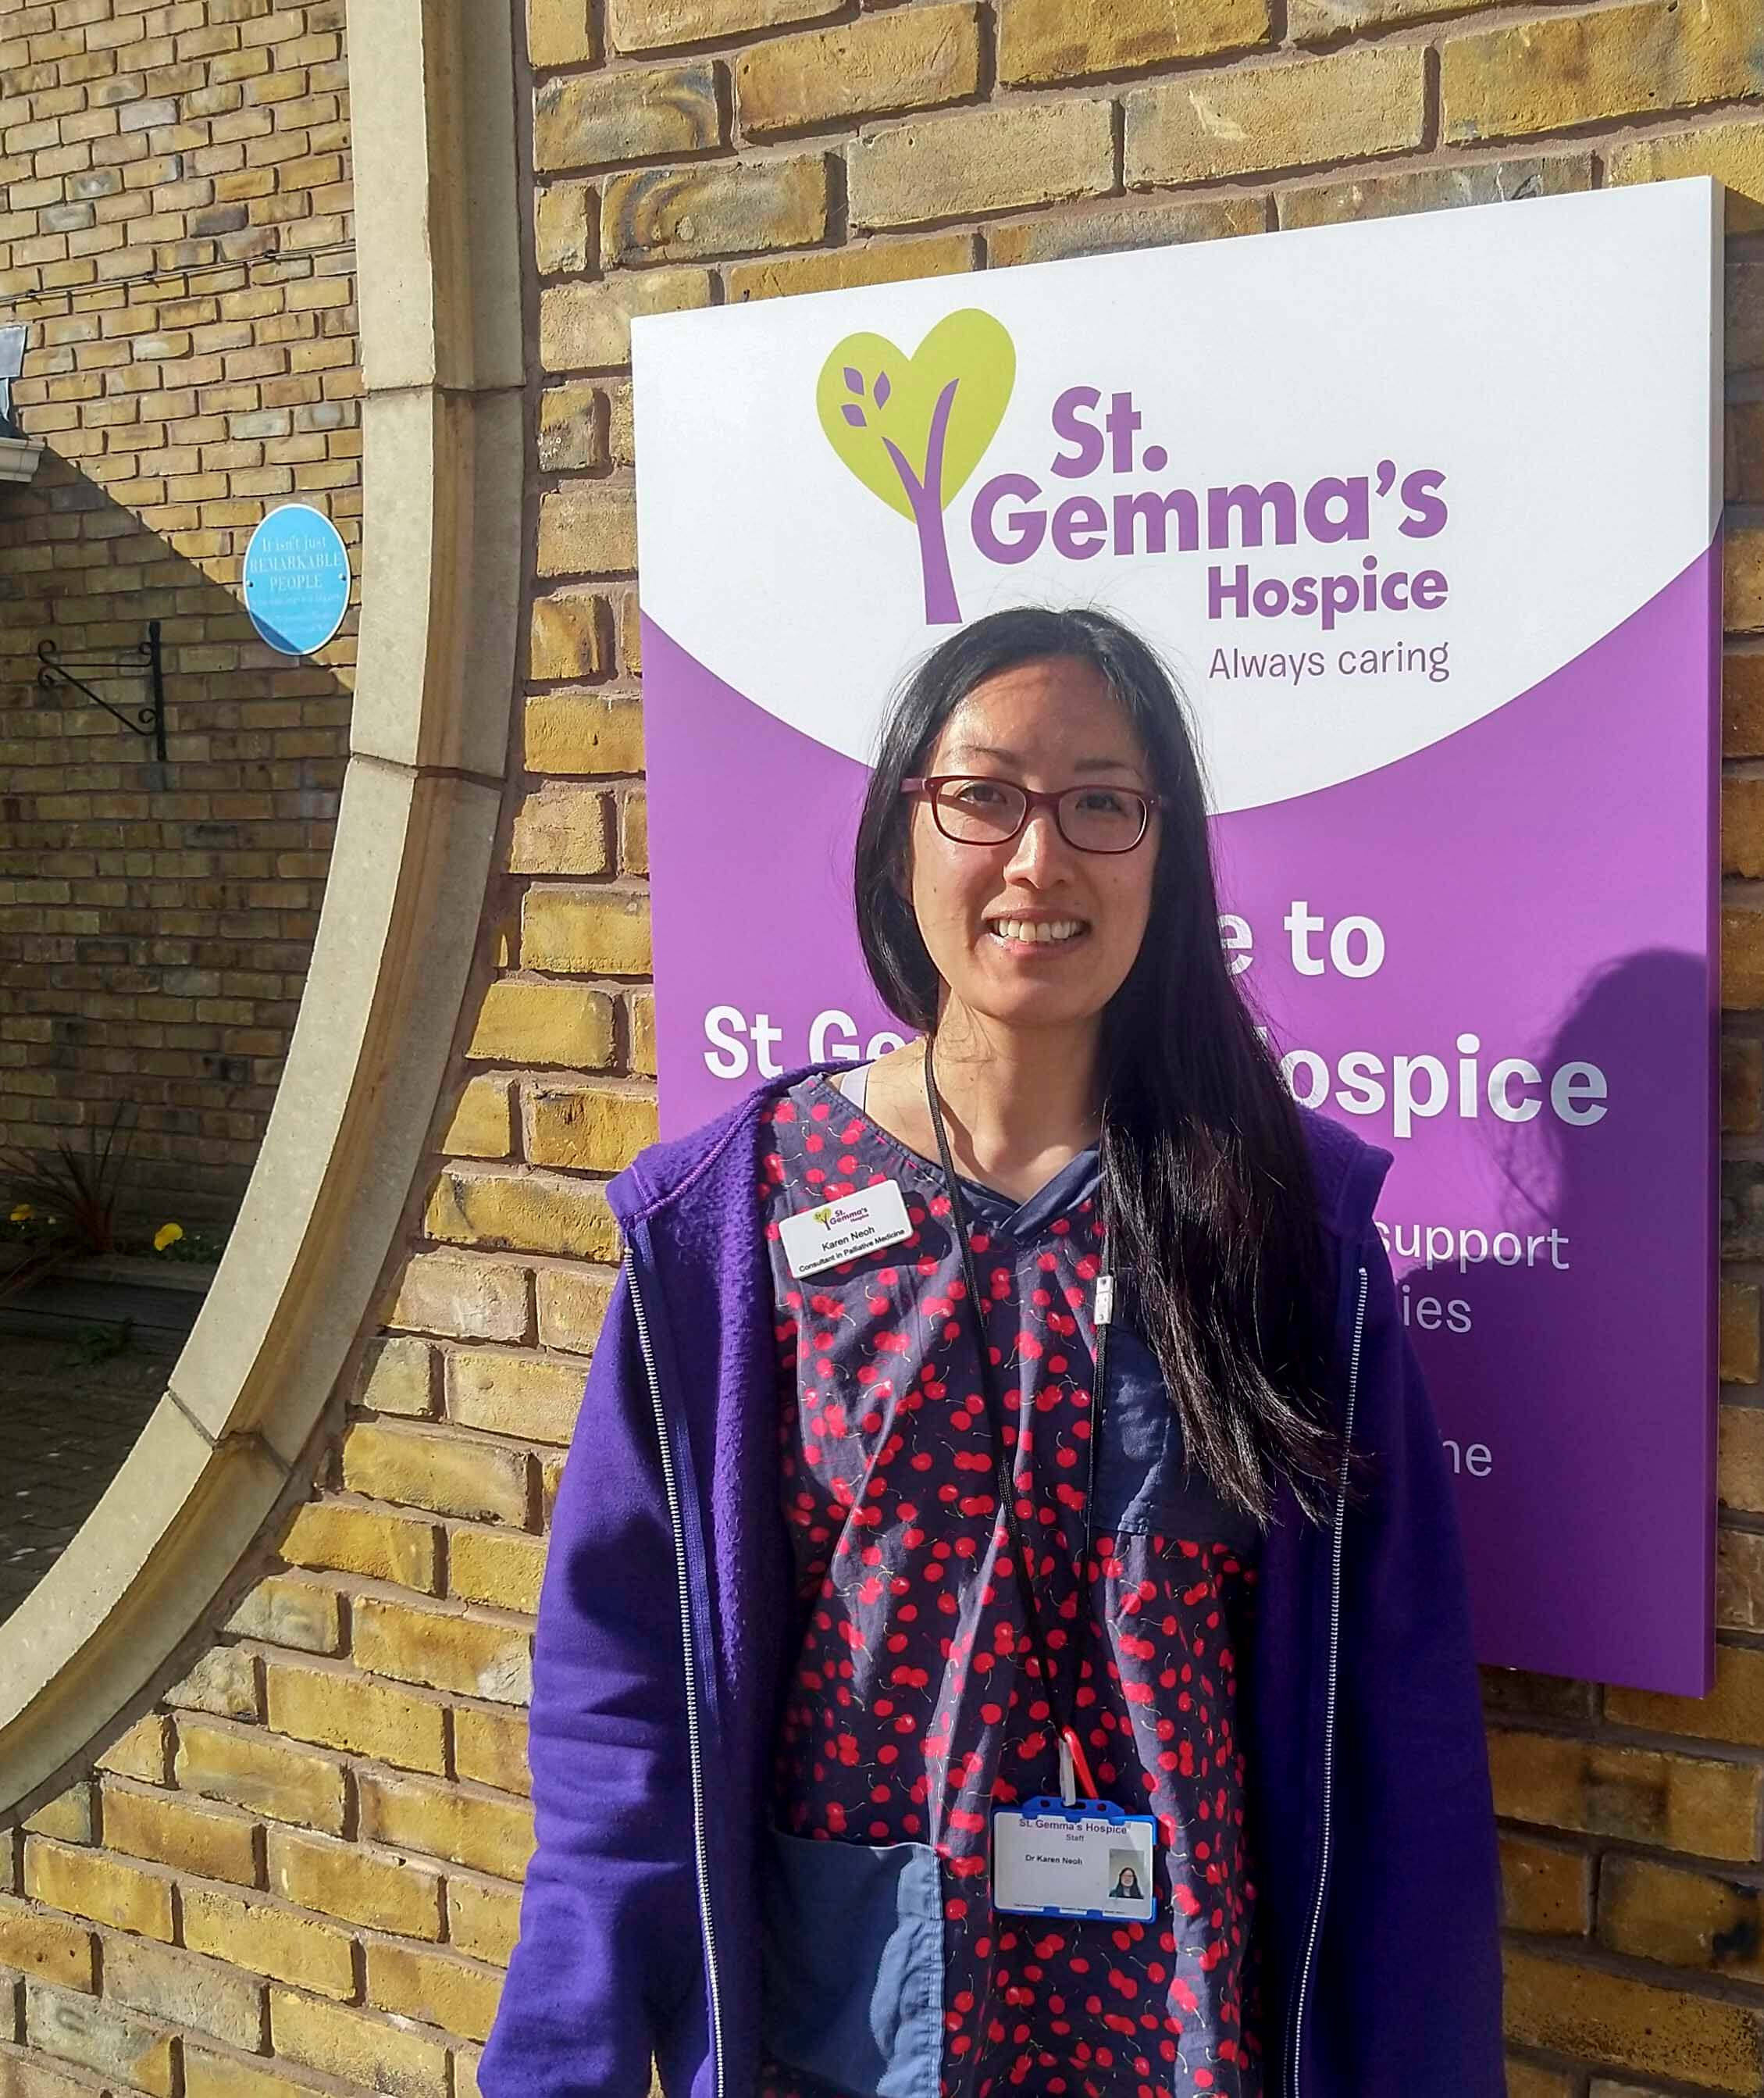 A doctor is standing outside the hospice with a St Gemma's sign behind her. She is wearing a navy and red scrub top.